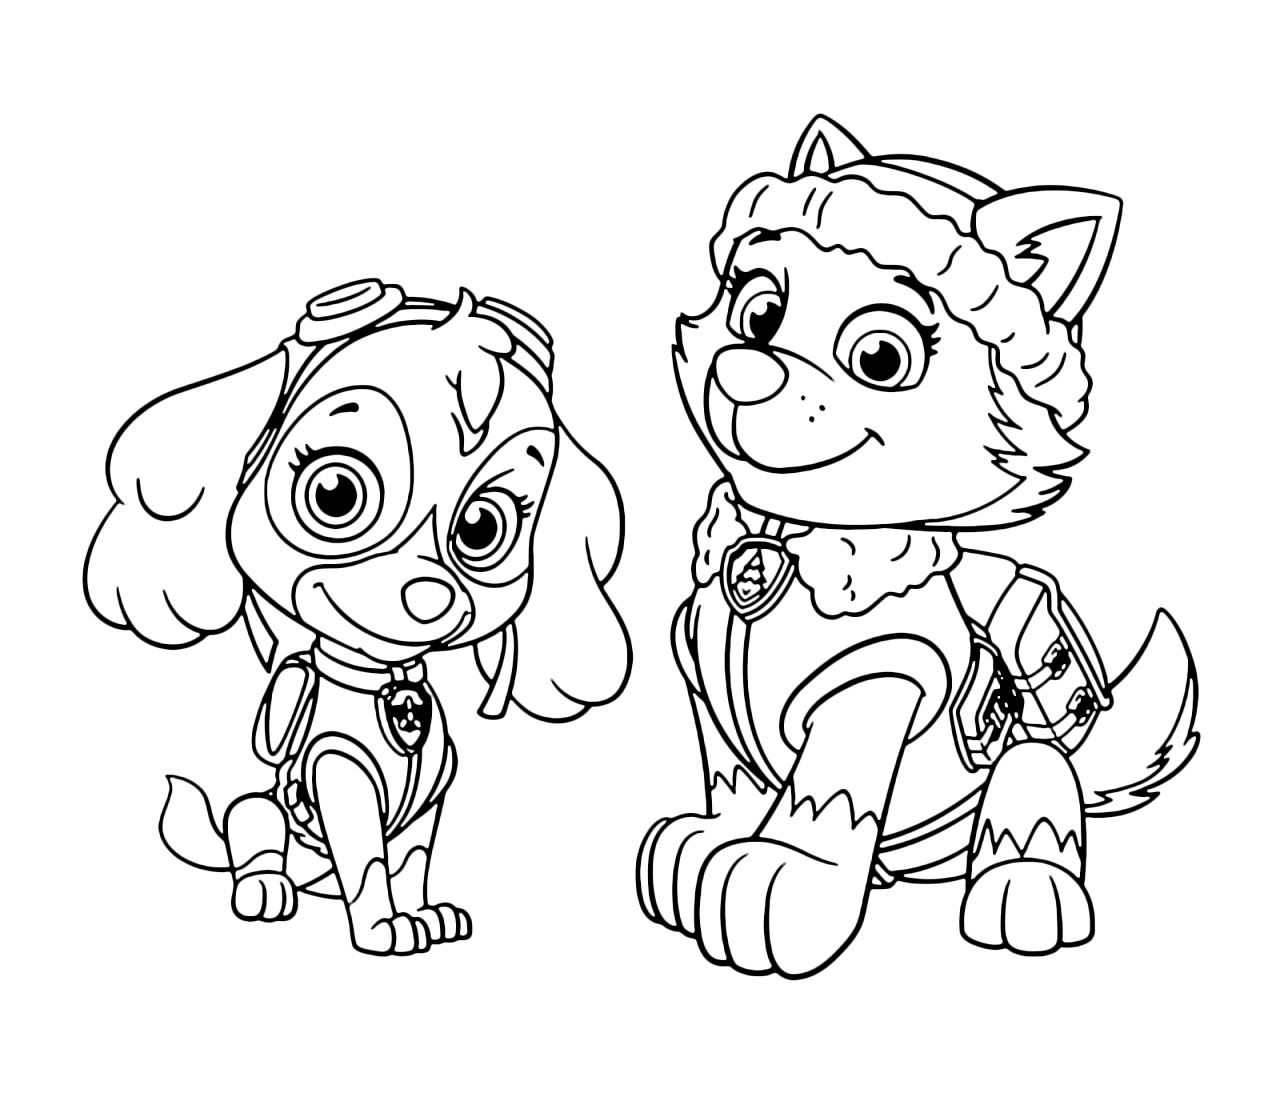 paw patrol for coloring everest paw patrol coloring lesson kids coloring page coloring paw patrol for